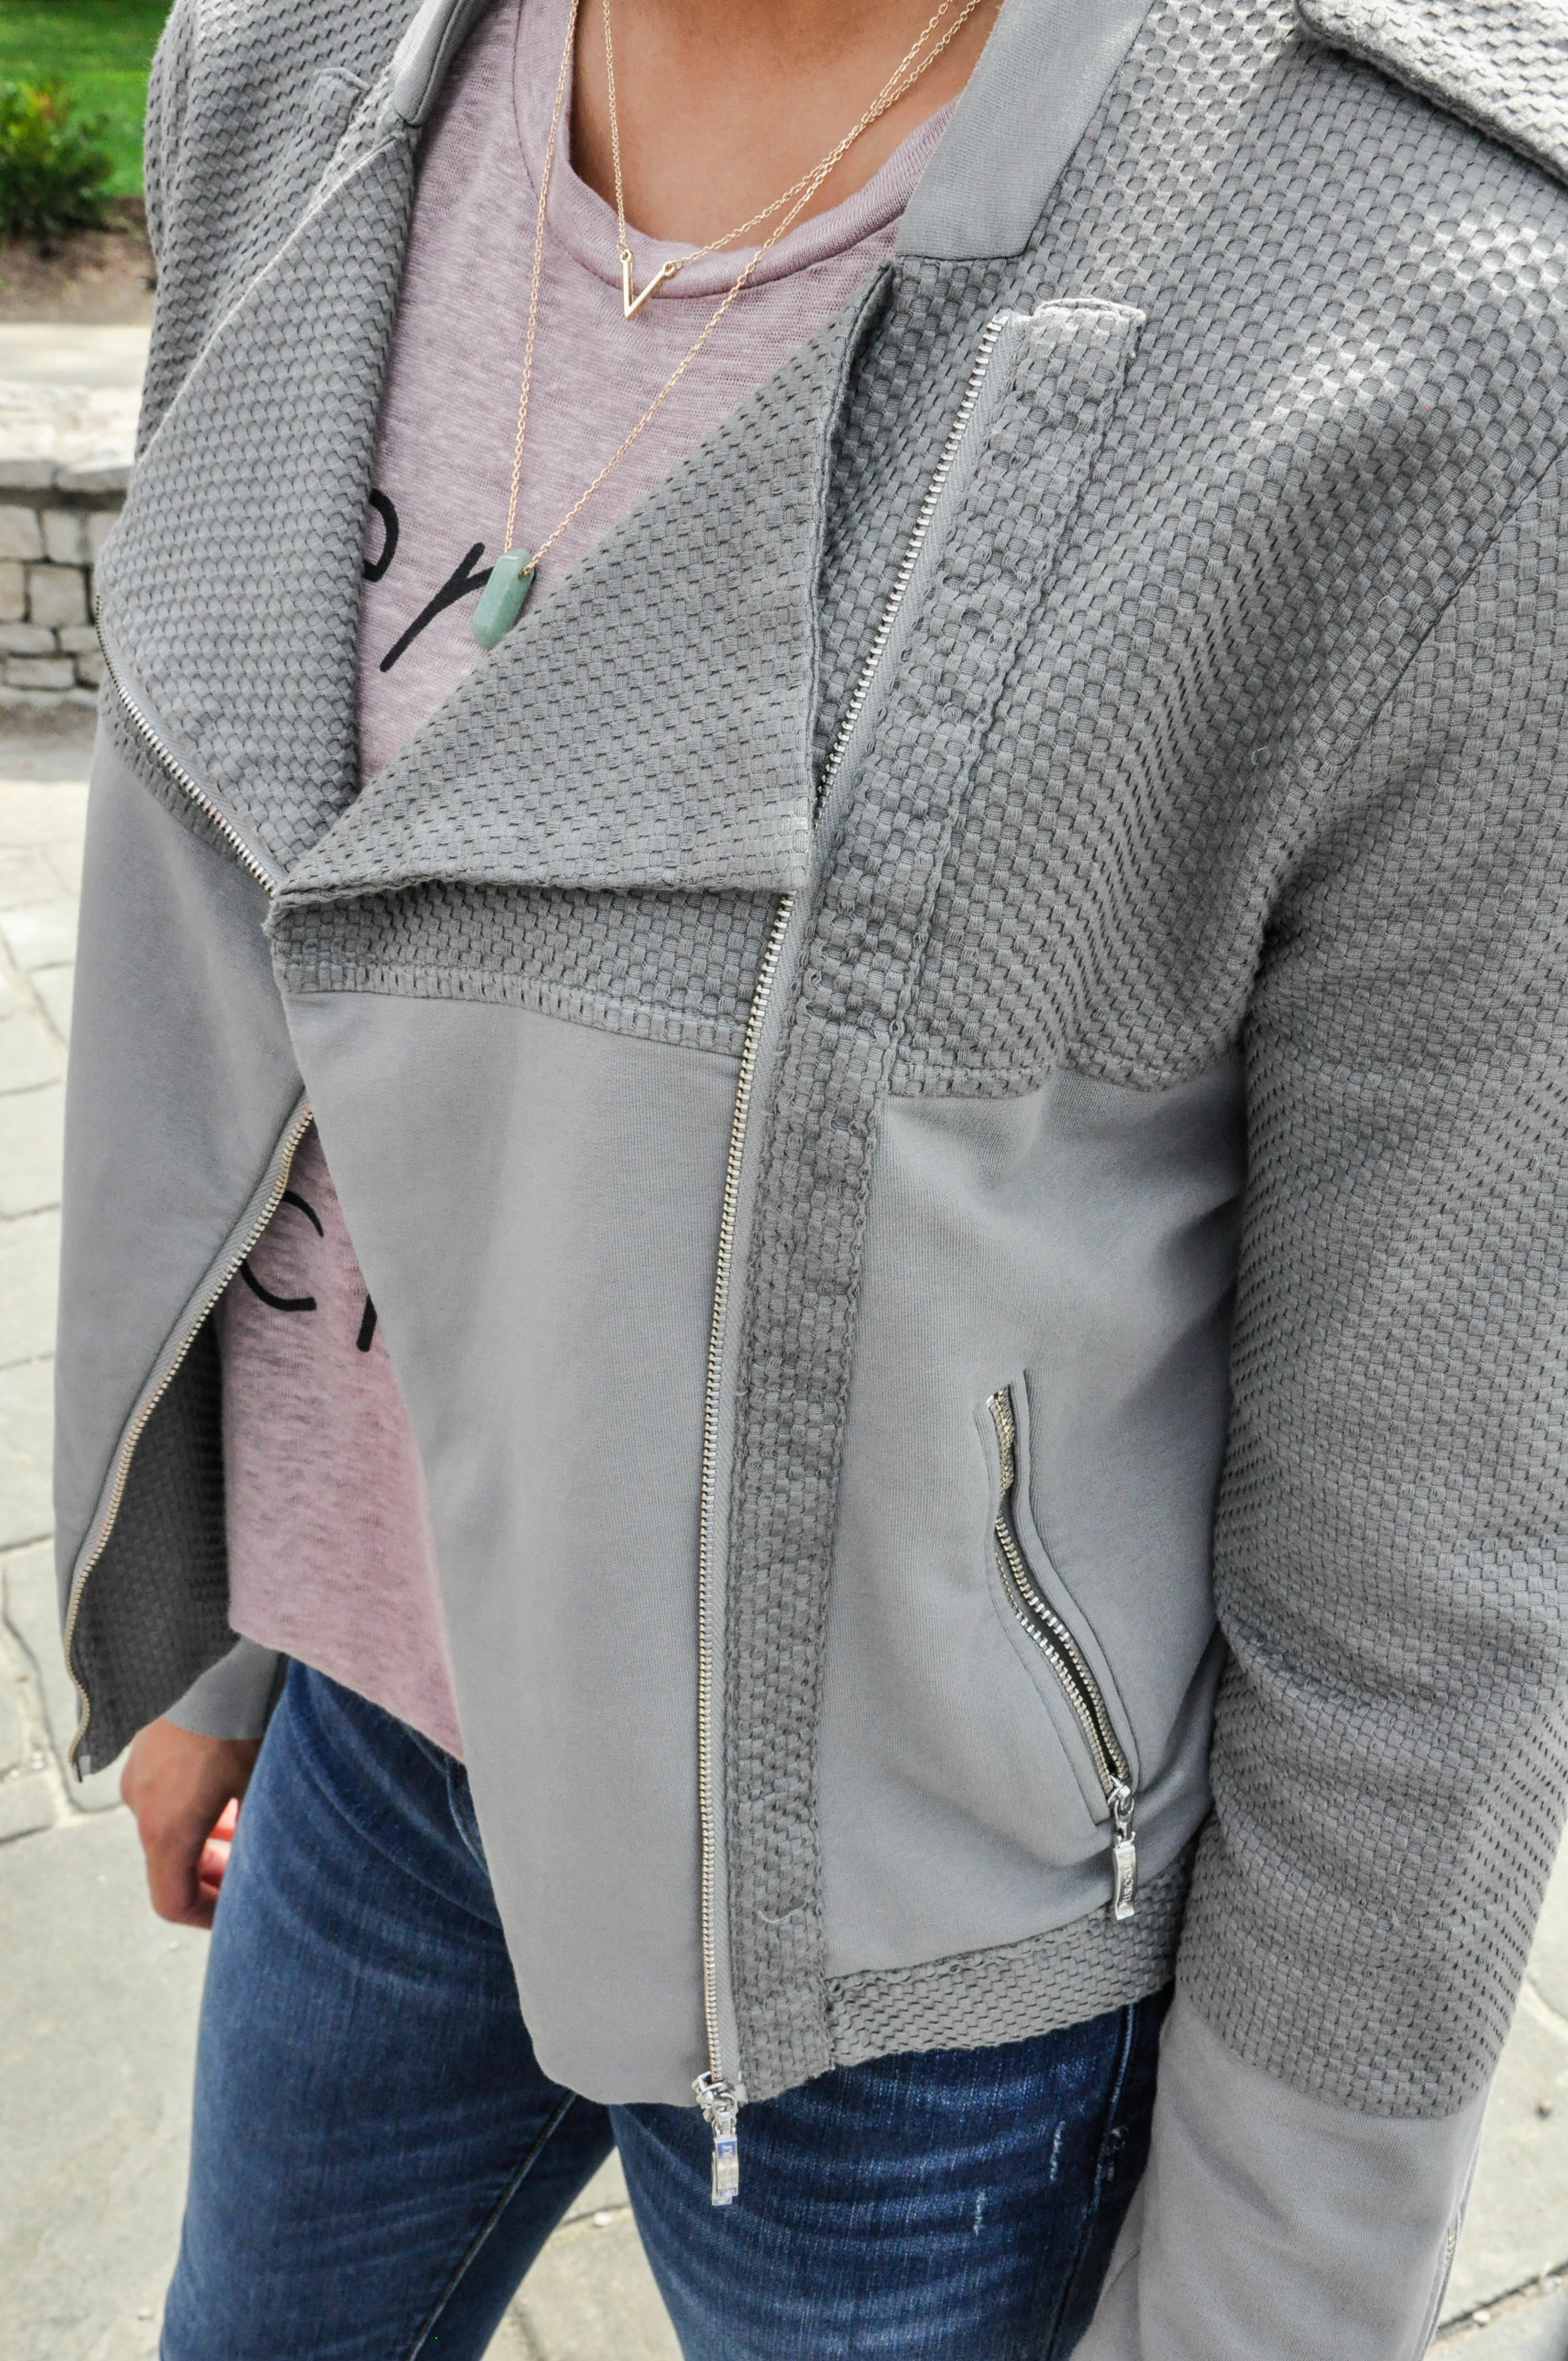 A few things that really drew me into this jacket are the faded olive green color as well as its unique texture. The woven detail on the sleeves and collar makes this jacket stand out from the usual asymmetrical zippered biker jacket not only in style, but also in texture.